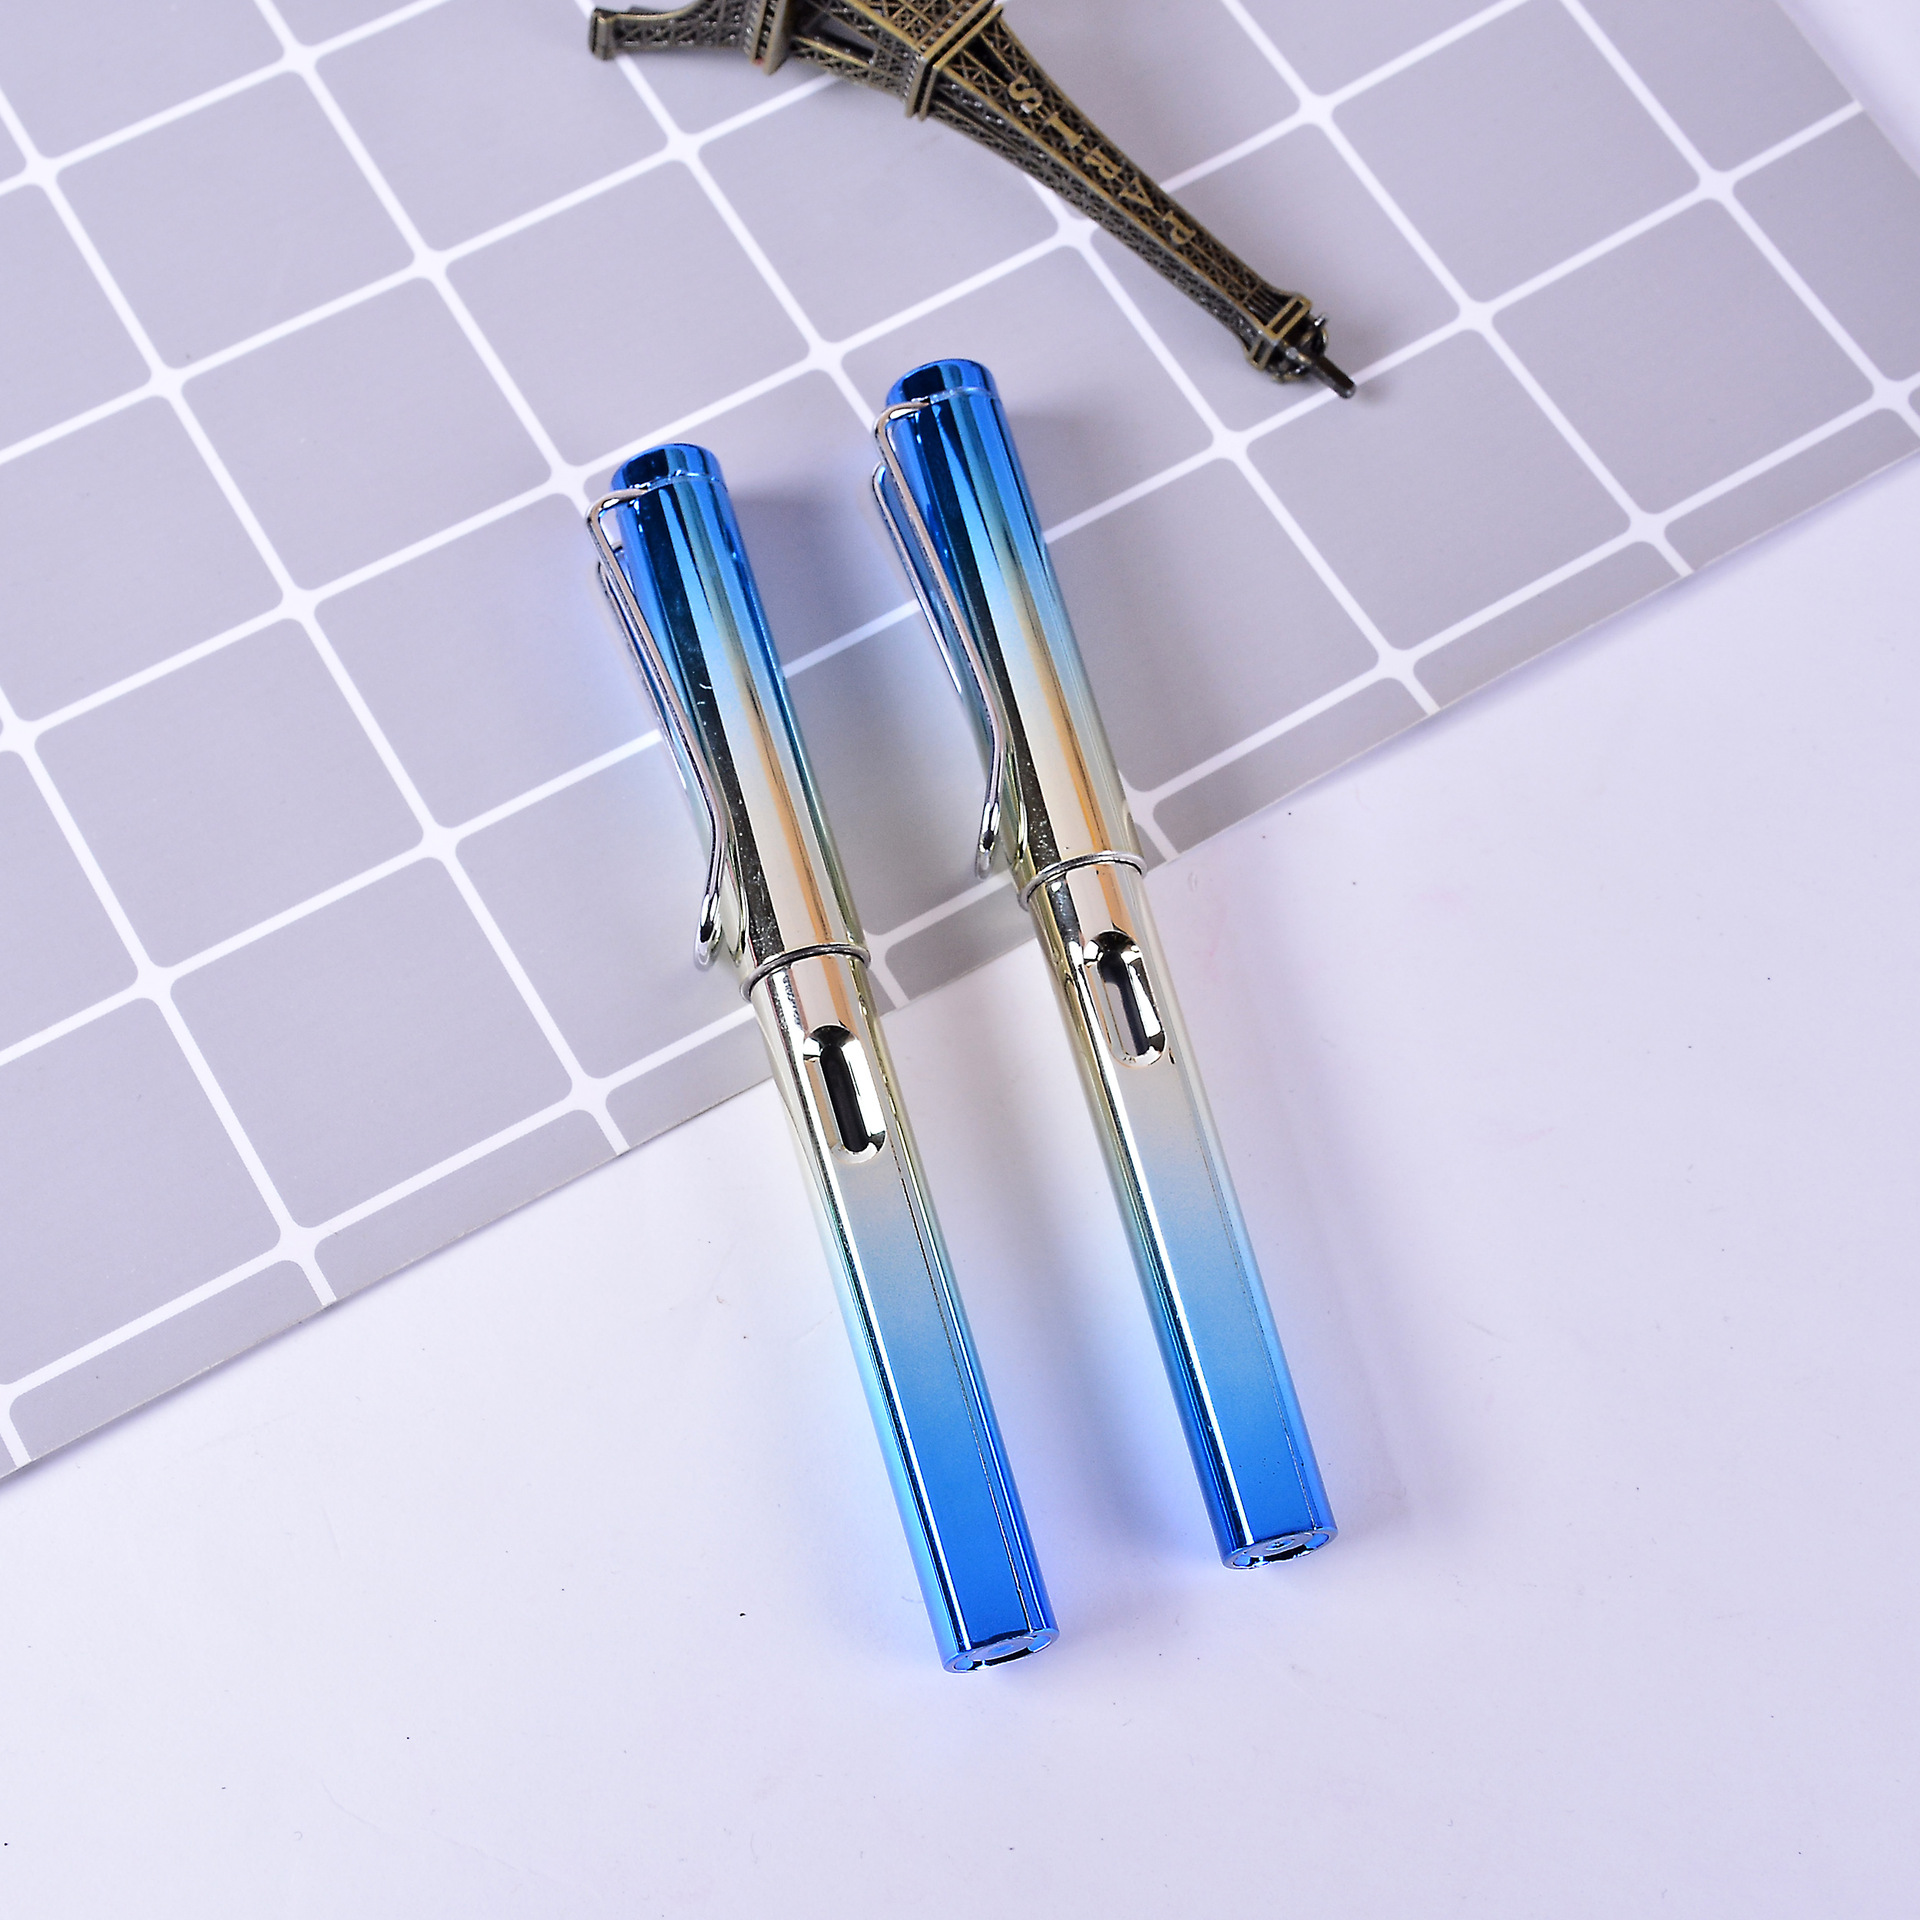 0 5mm Blue Gree Pink Purple Classic Stainless steel Business Medium Nib Fountain Pen Gold Trim School Student Office Stationery in Fountain Pens from Office School Supplies